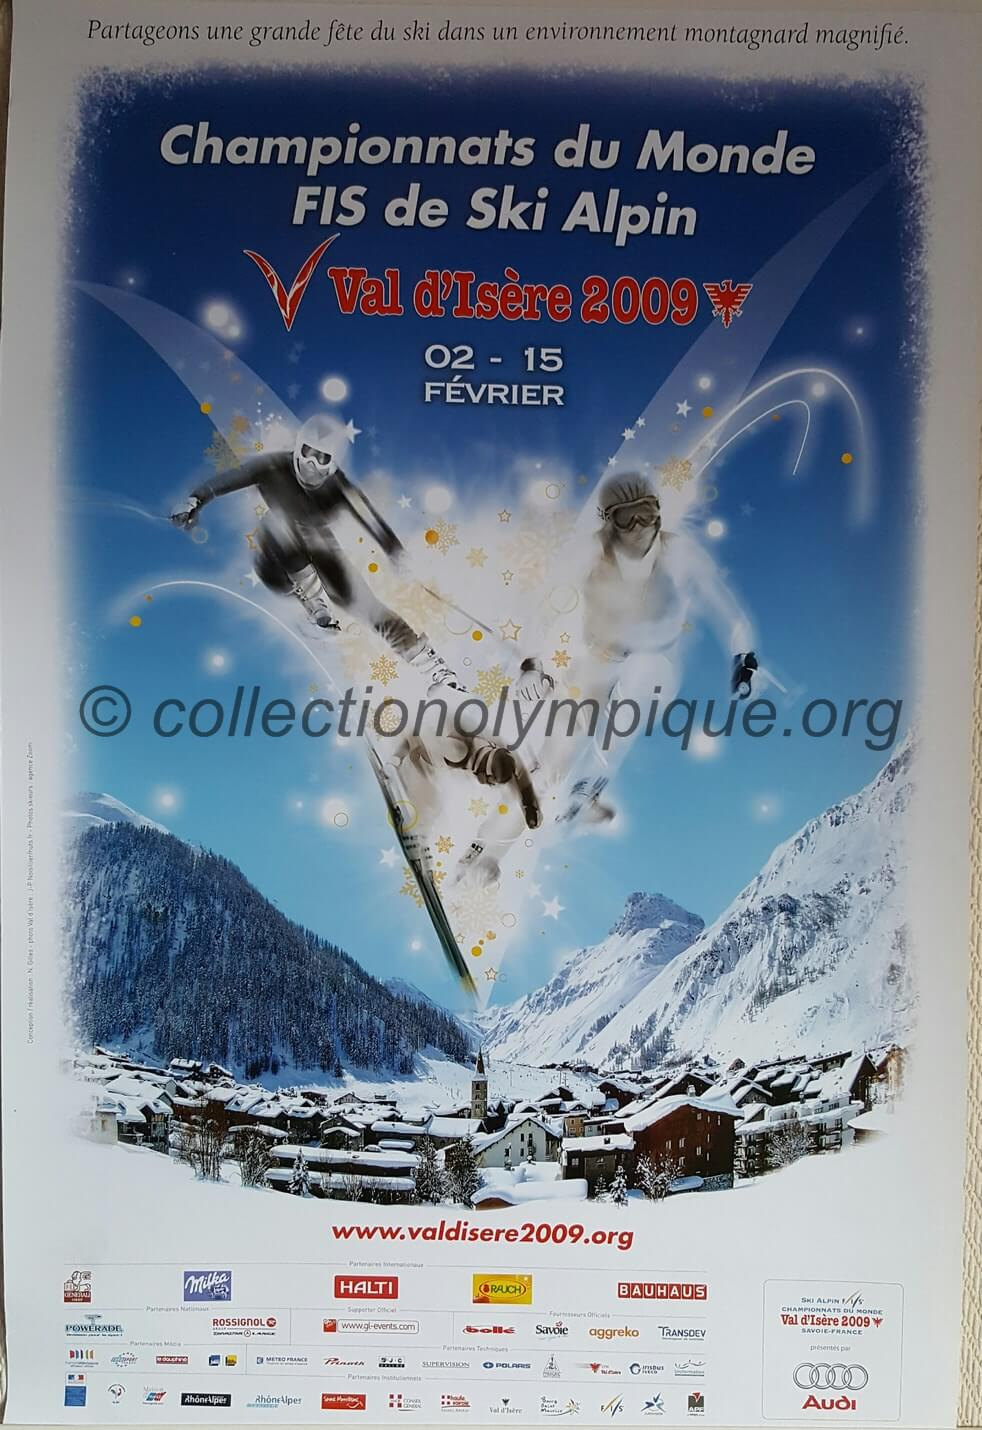 2009 Val d'Isère official poster world championship of alpine skiing 60 x 40 cm